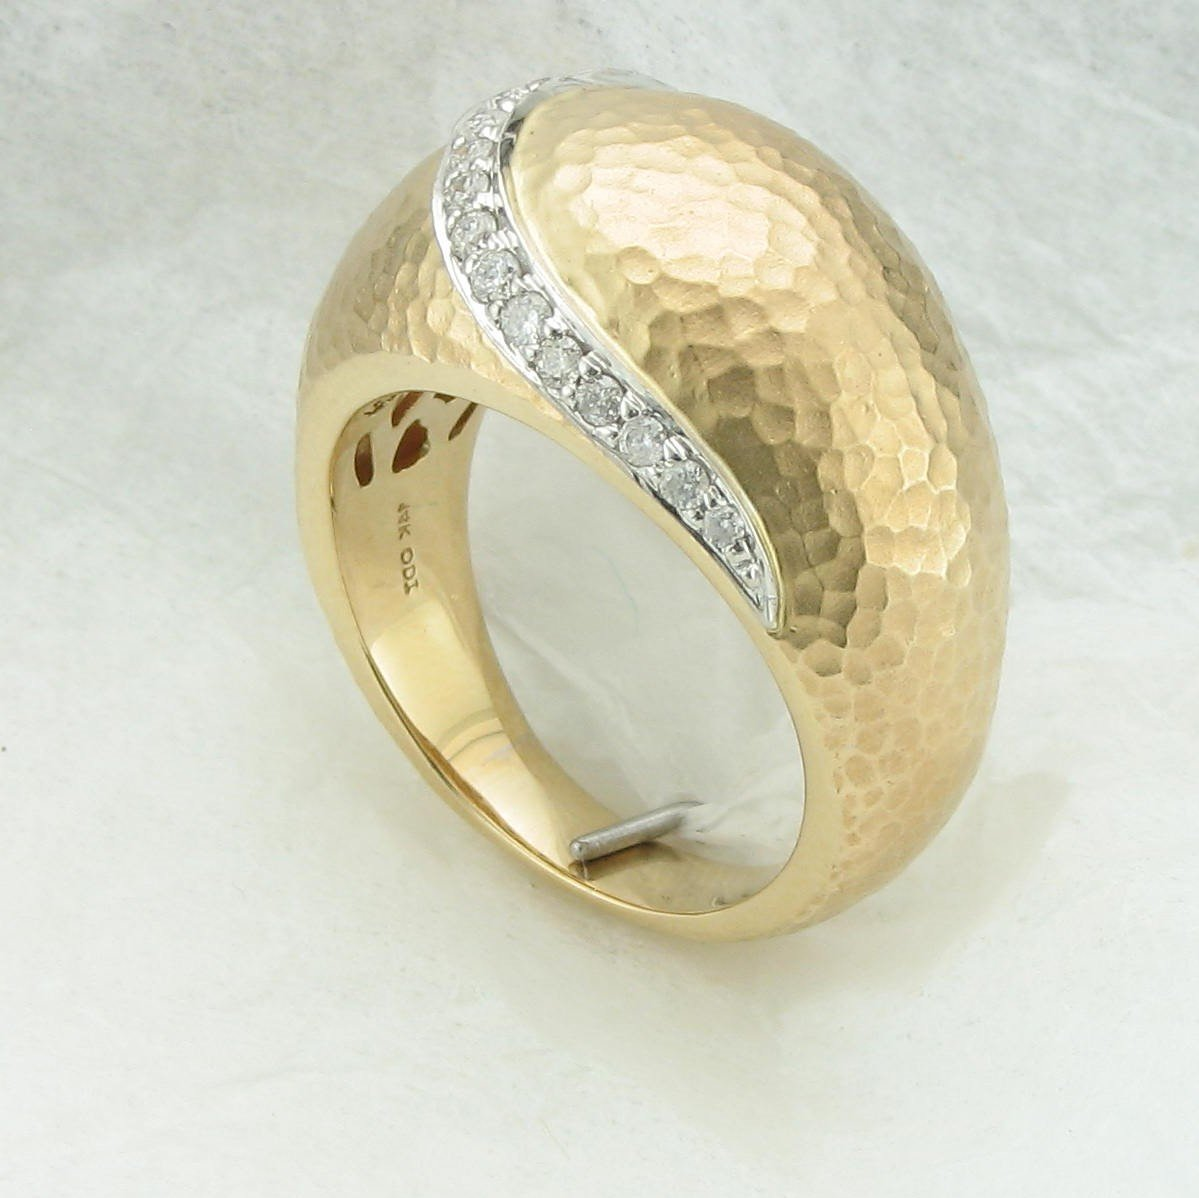 0.10tcw Diamond Textured Dome Ring set in 14K Yellow Gold